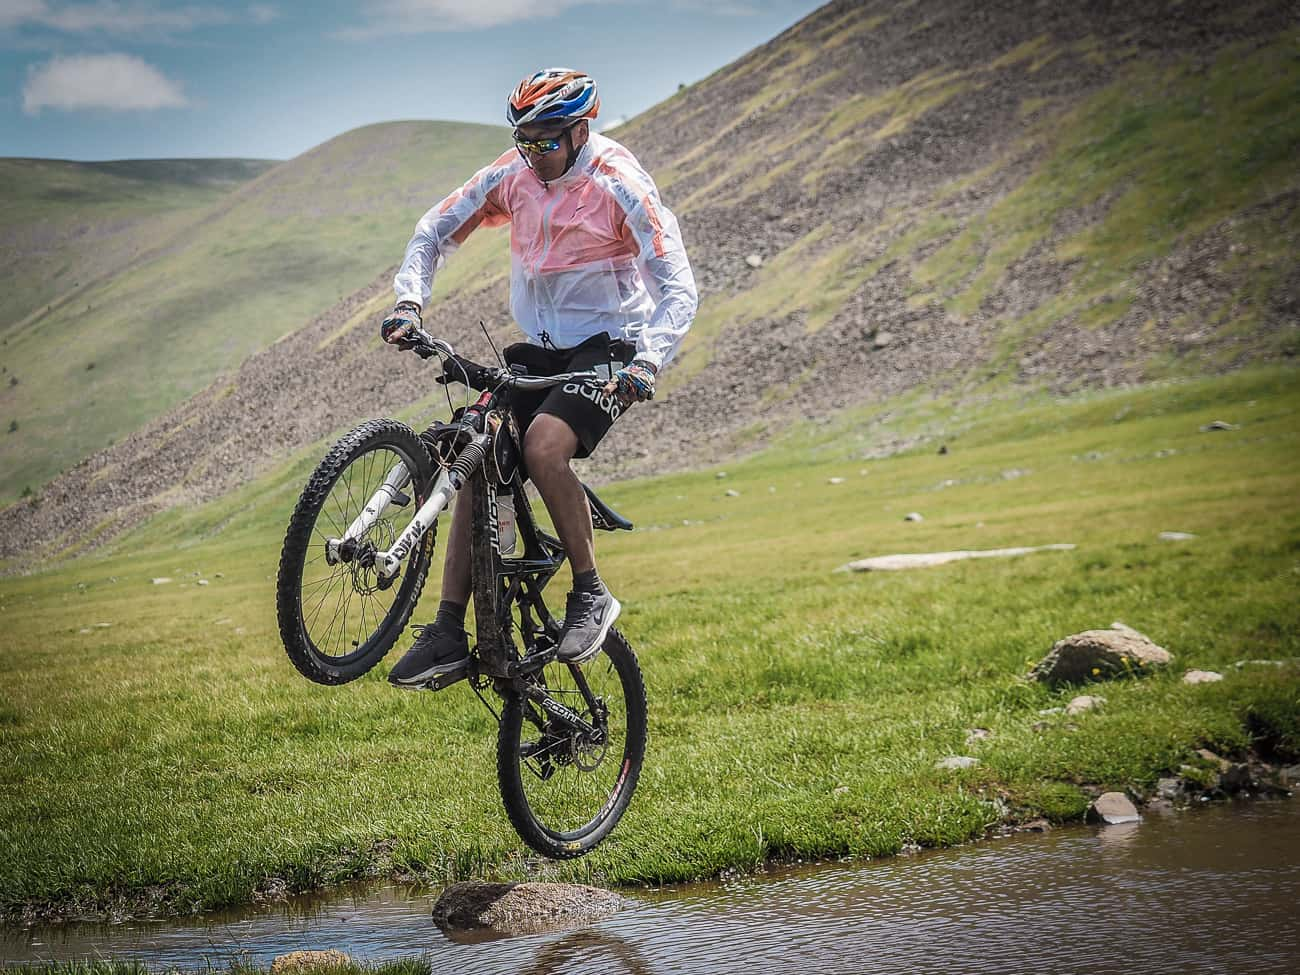 a Mongolian mountain biker jumping a stream